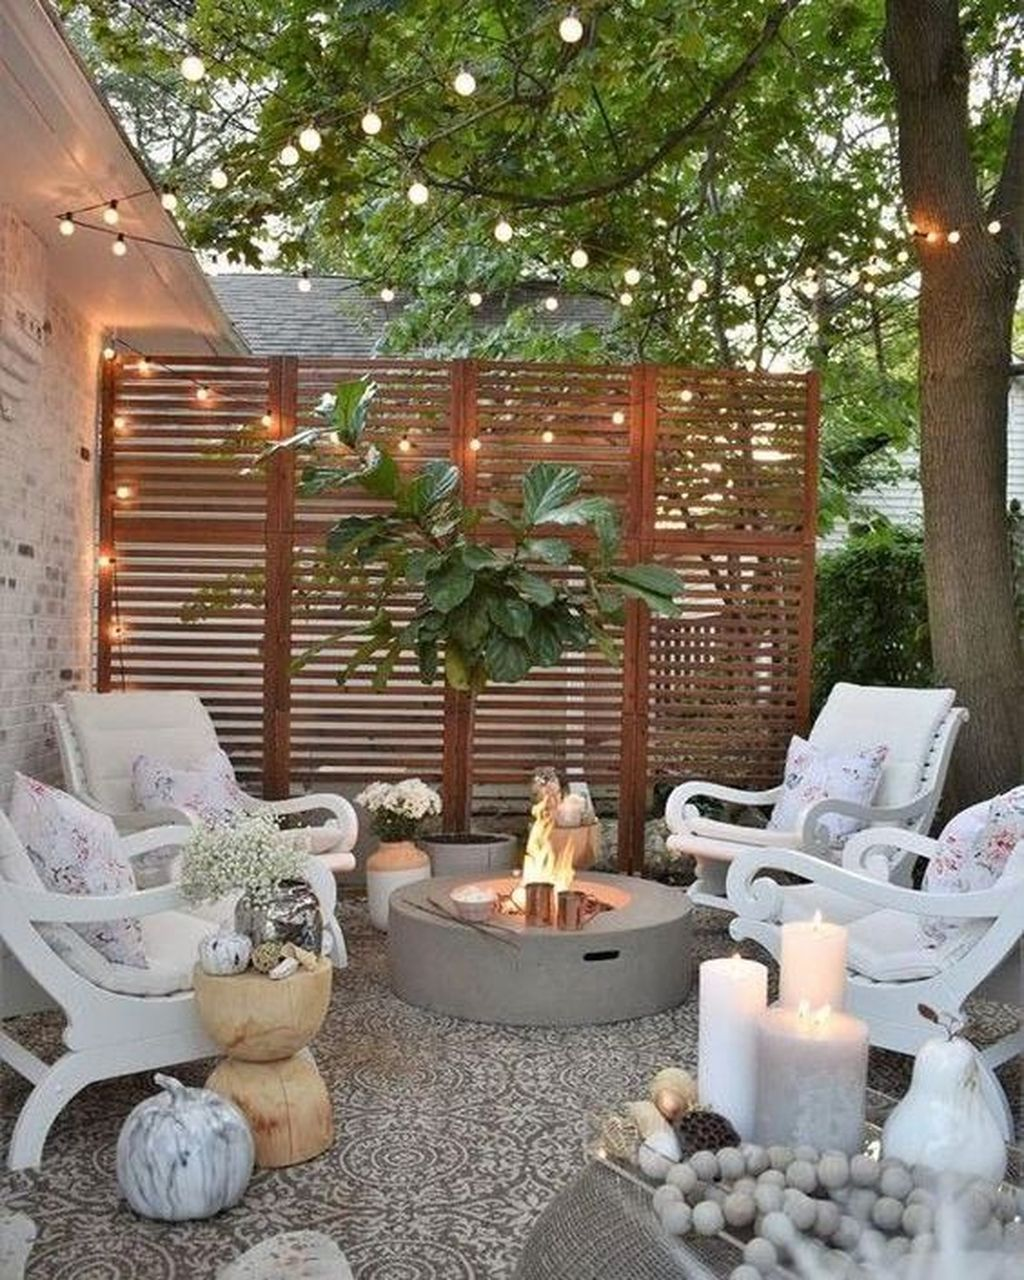 20 Inspiring Outdoor Patio Design For Your Garden Trenduhome Small Outdoor Patios Small Backyard Landscaping Backyard